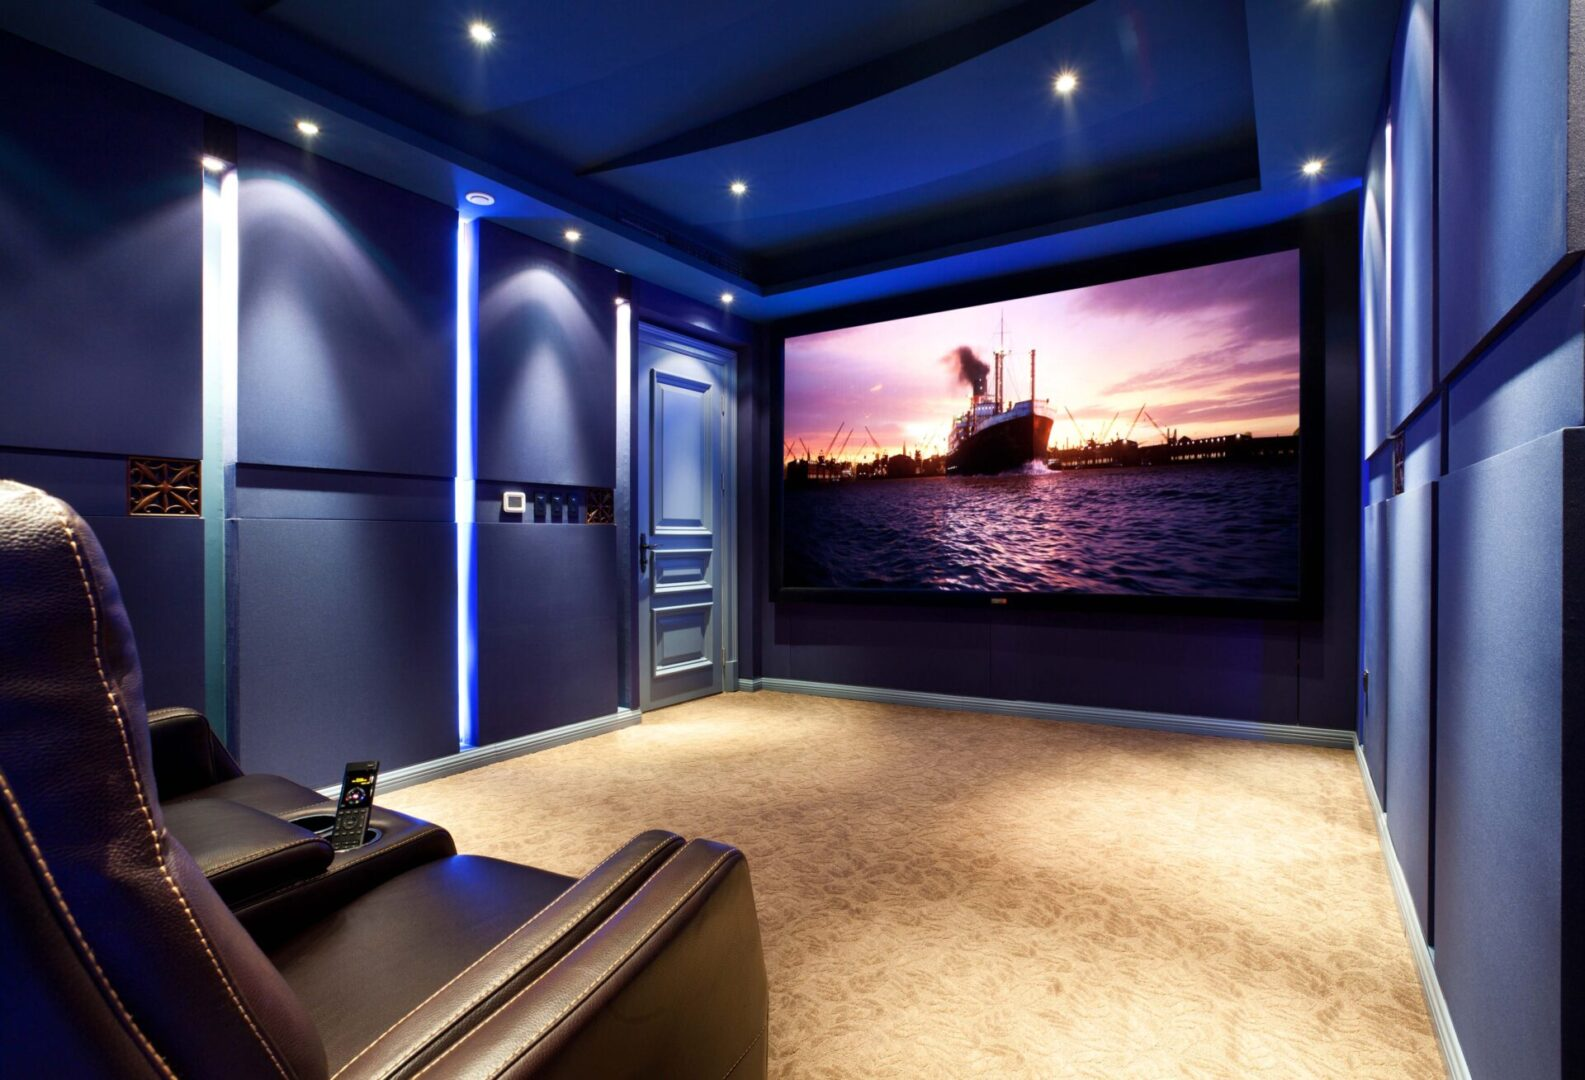 2013 CEDIA Best Theater under 75,000 Winner Installed 3 AE 963's LCR's and 4 AE 653's for Sides and rears.  Theater installed by Zene Private Theater